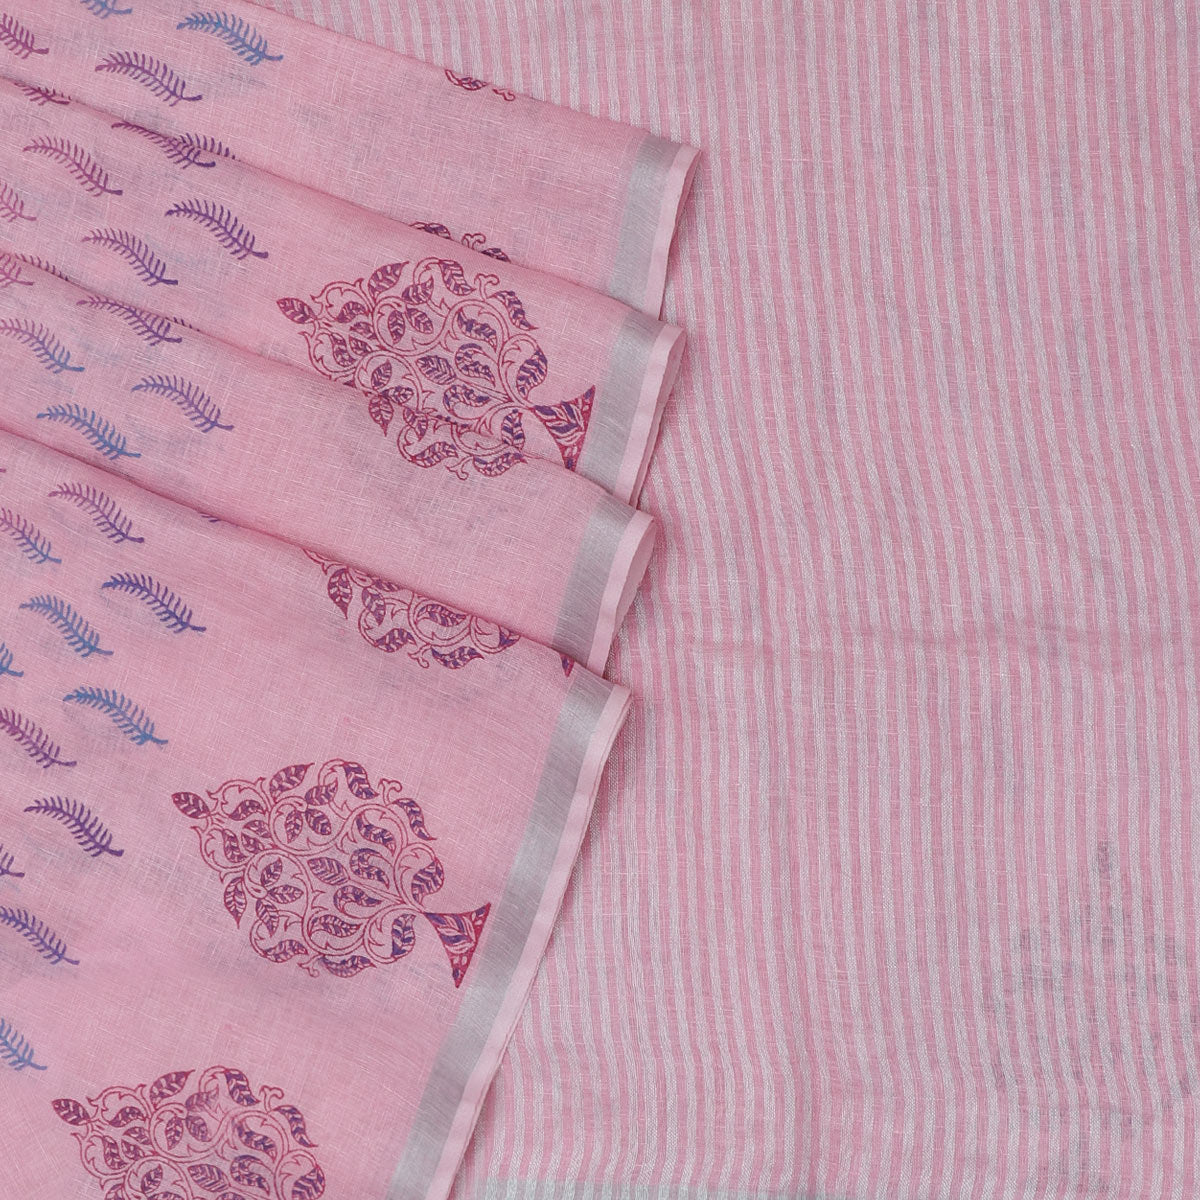 Handblock printed Linen Saree Pink and Printed leaf with Simple border